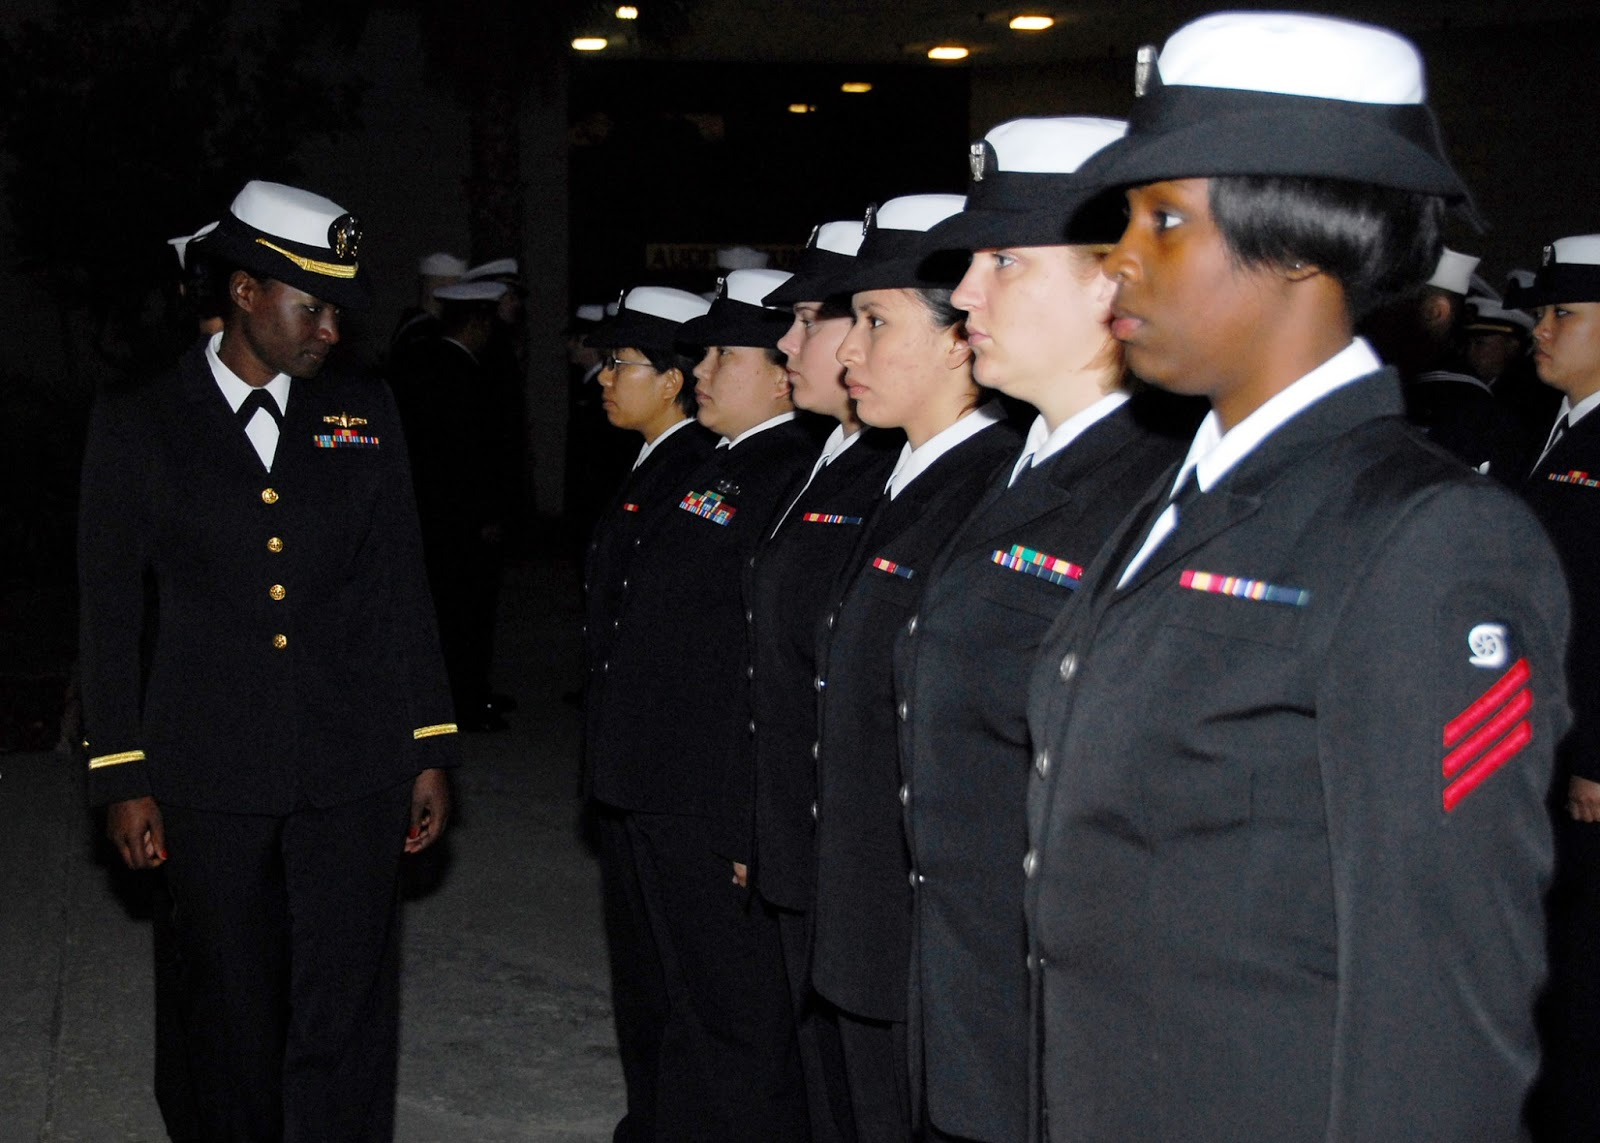 Model Womens Navy Dress Blue Uniform Regulations  Best Dress Image